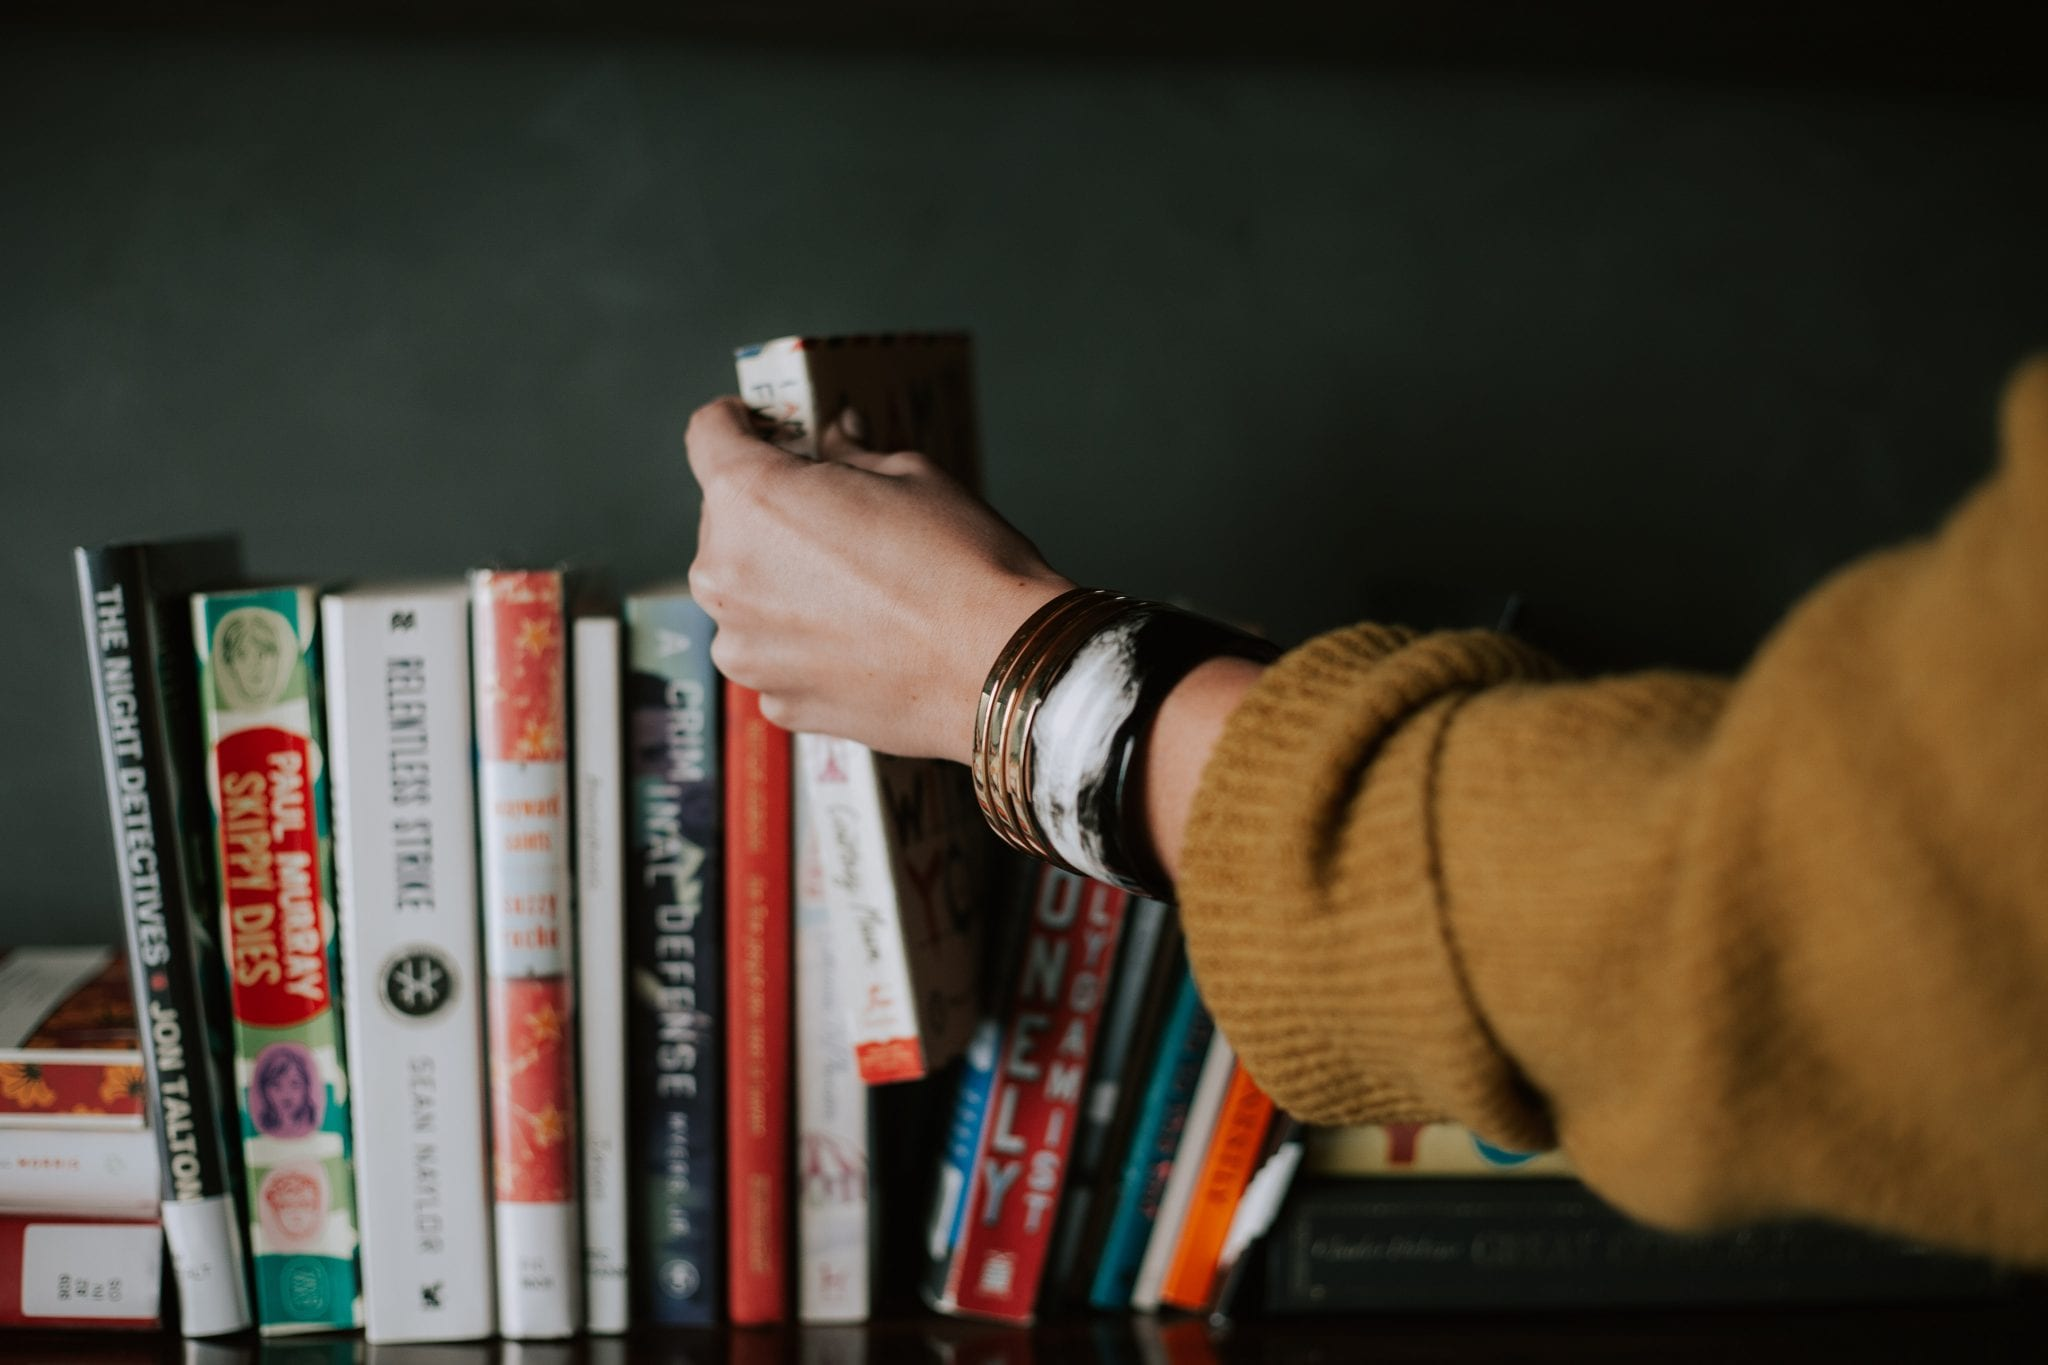 person picking white and red book on bookshelf